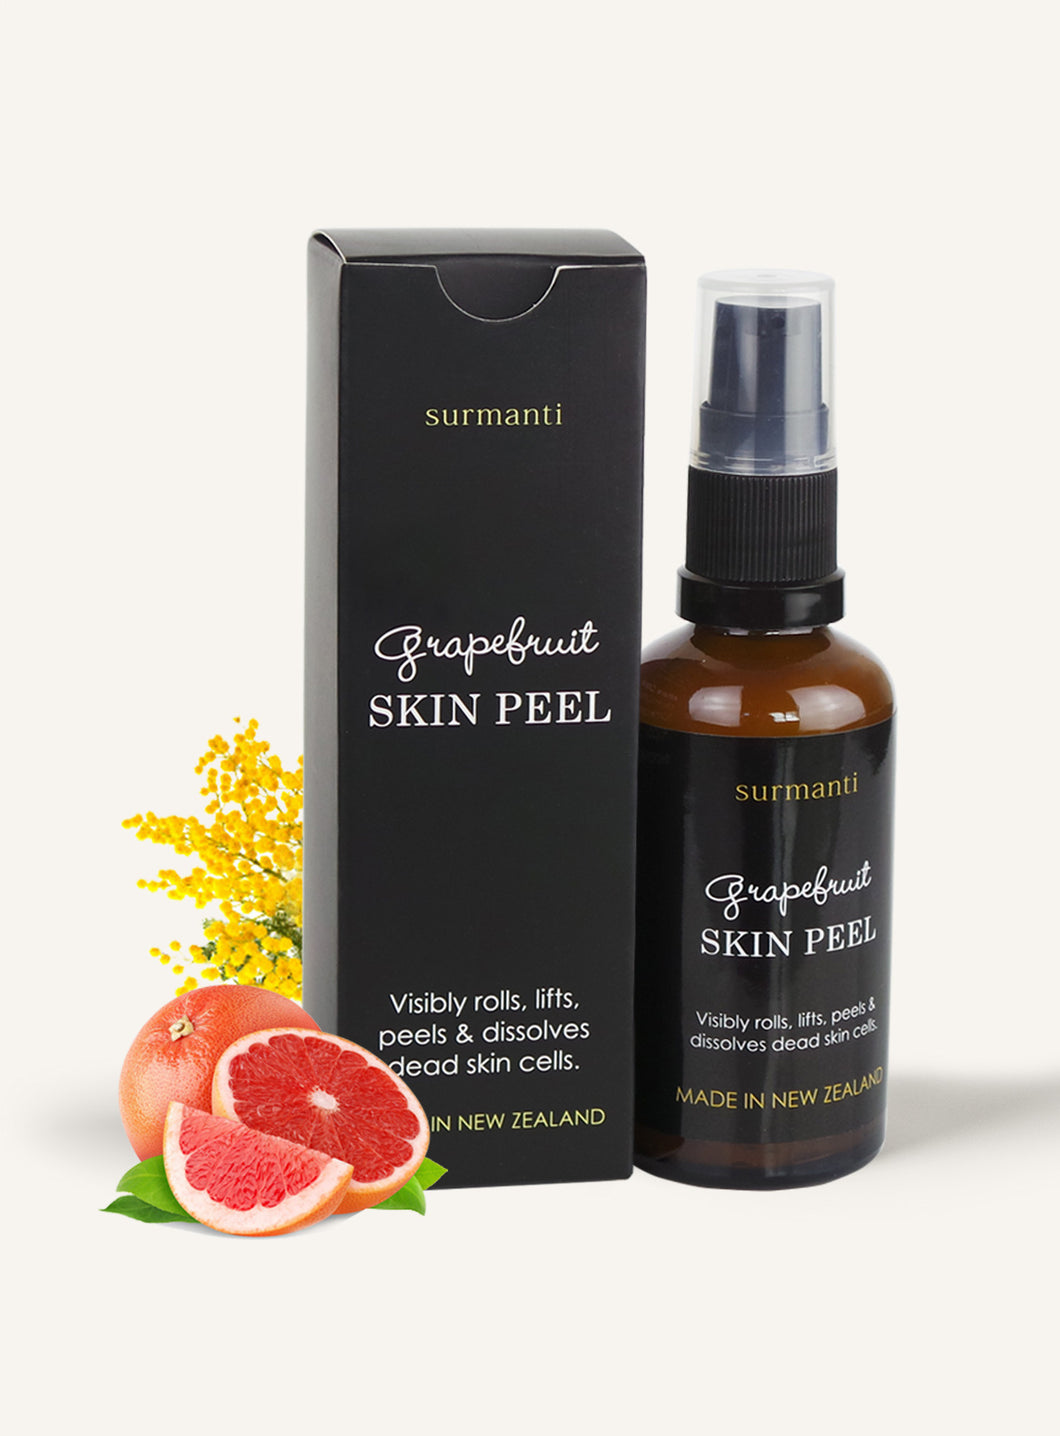 Surmanti Grapefruit Skin Peel